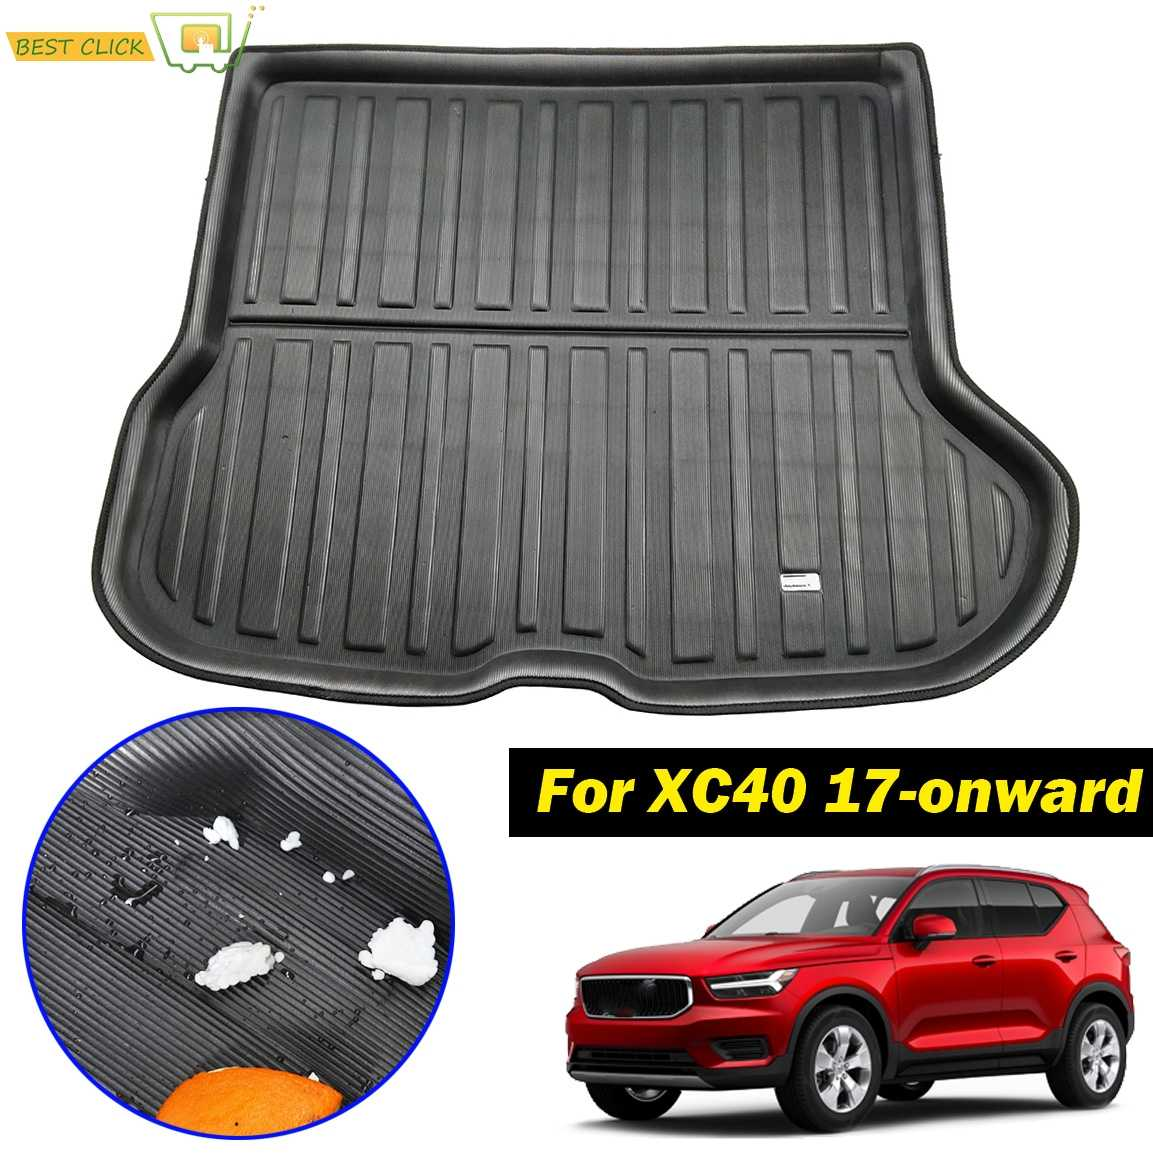 2017 /> TRAVALL RUBBER ALL WEATHER BOOT MAT LINER FOR VOLVO XC40